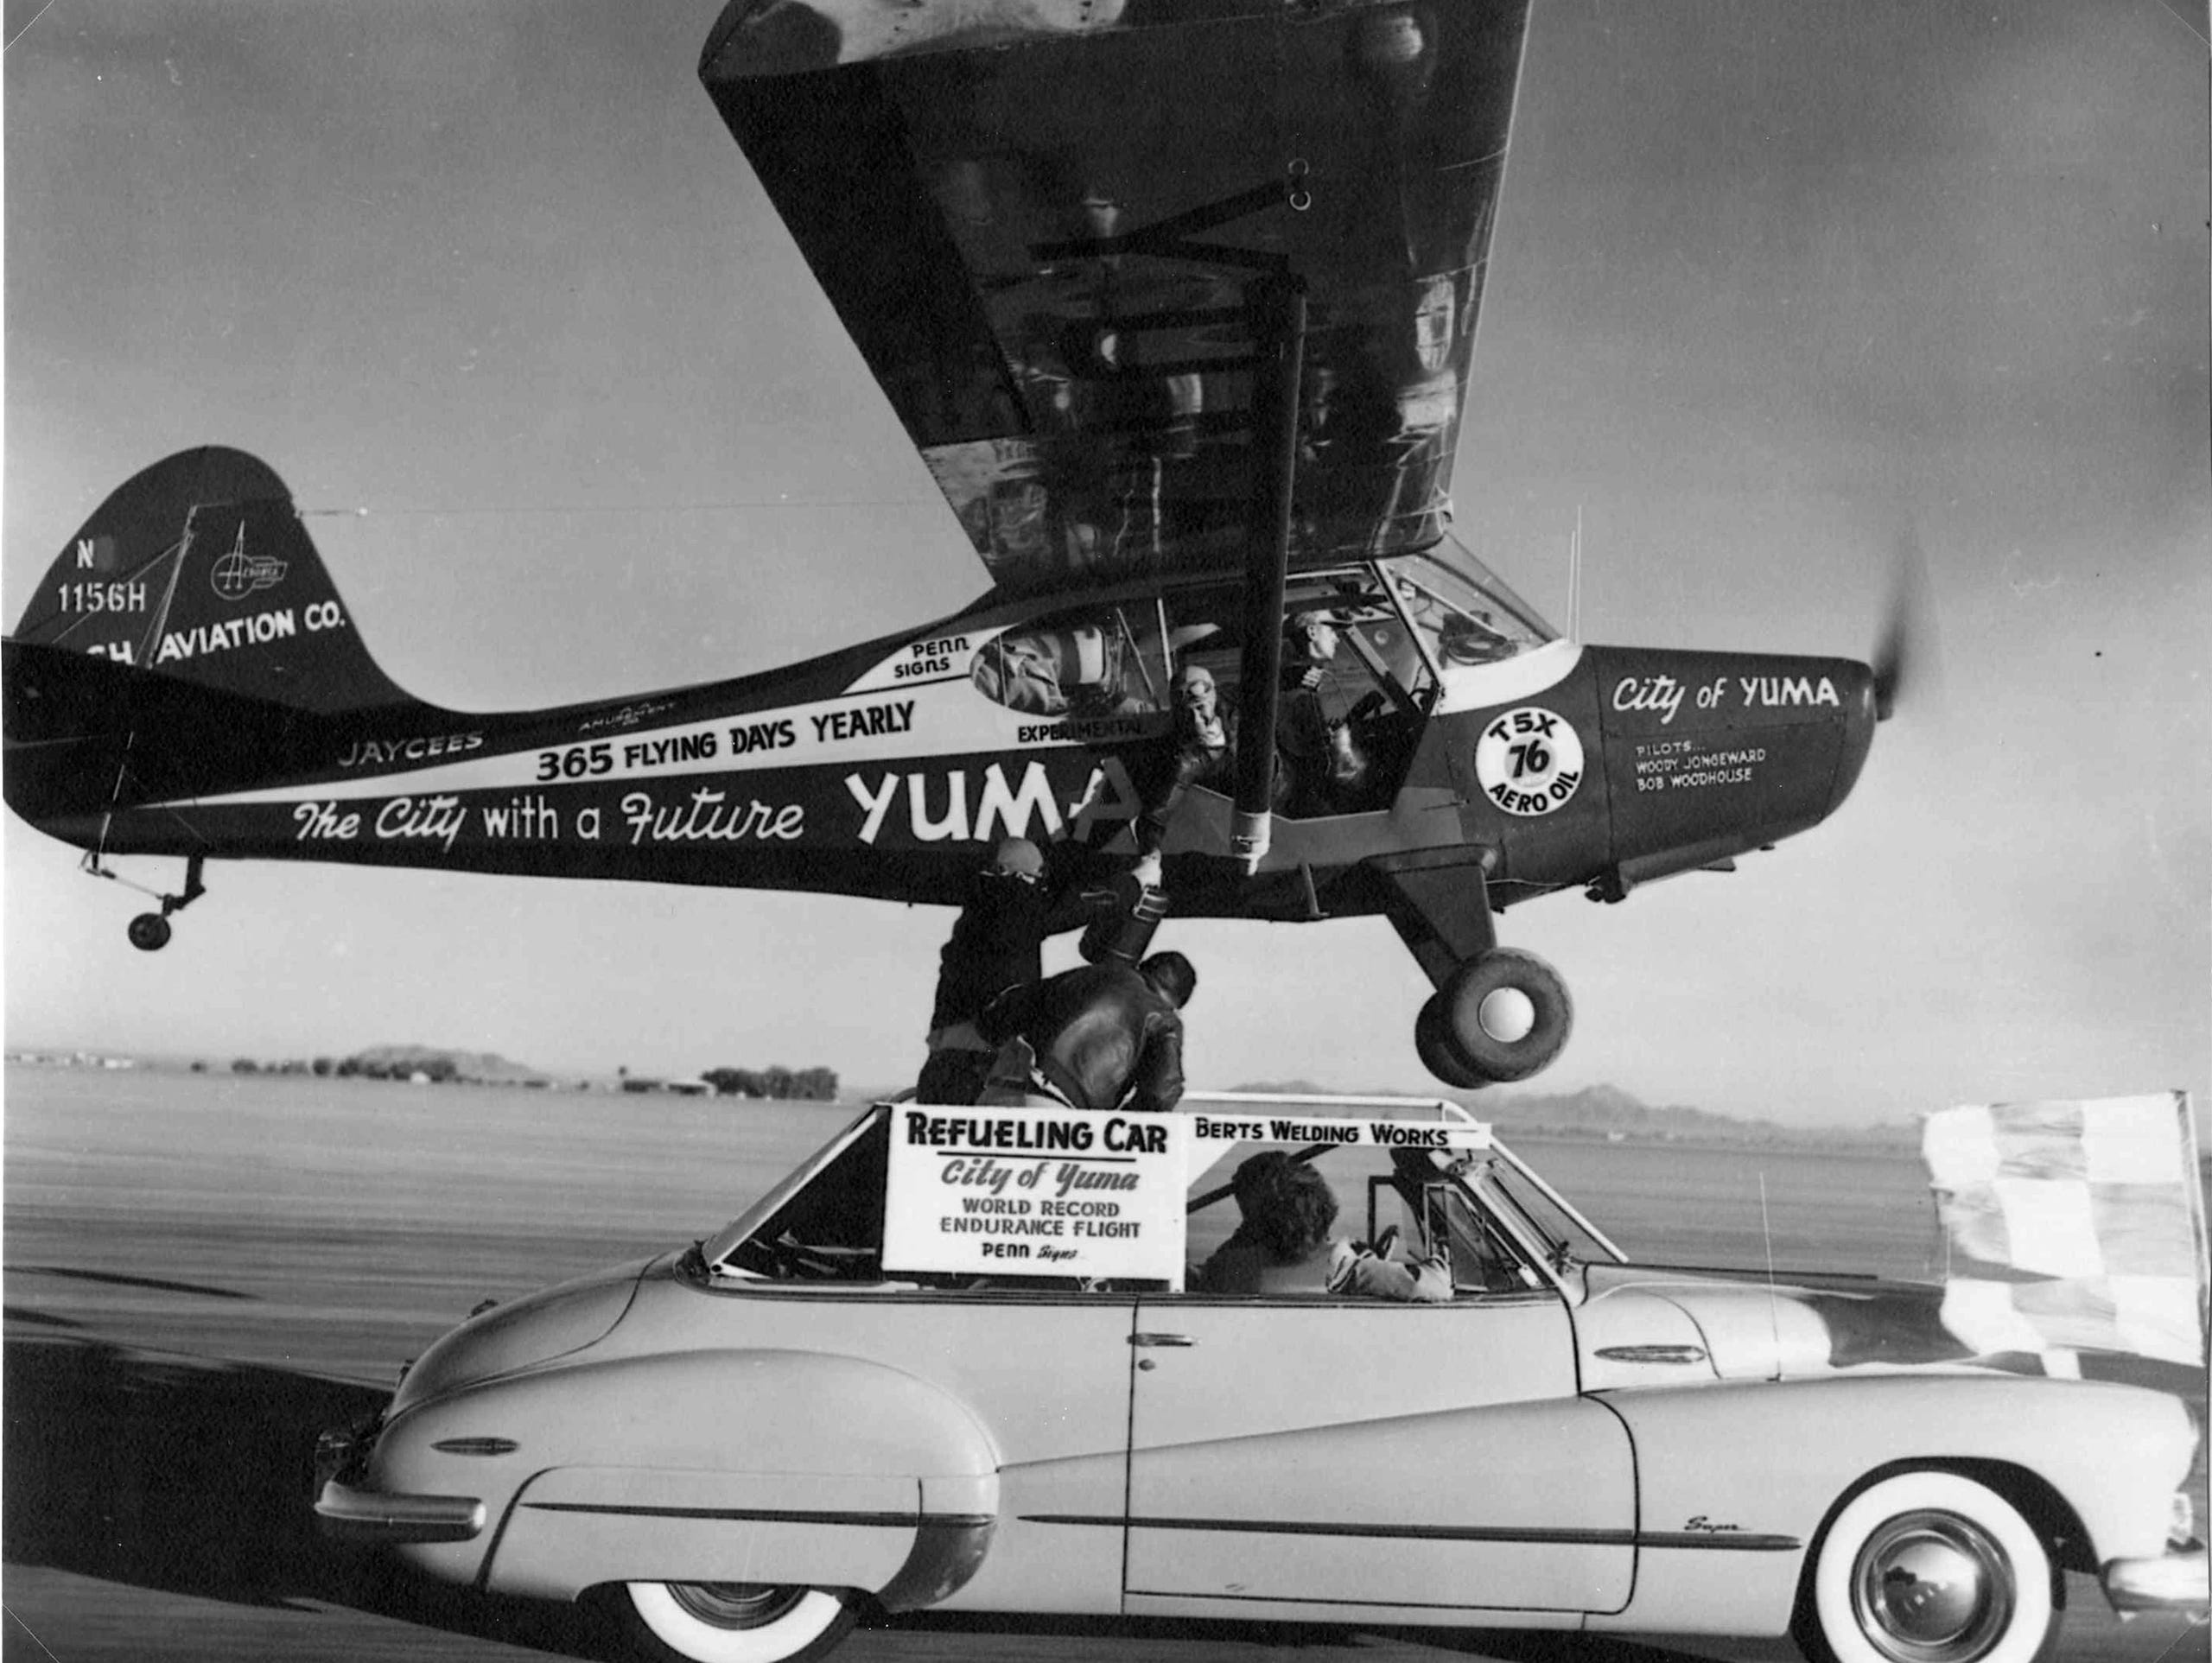 Bob Hodge, in the speeding Buick,  hands breakfast and lunch to Bob Woodhouse in an Aeronca Sedan flying low over a Yuma, Ariz. airstrip in 1949.